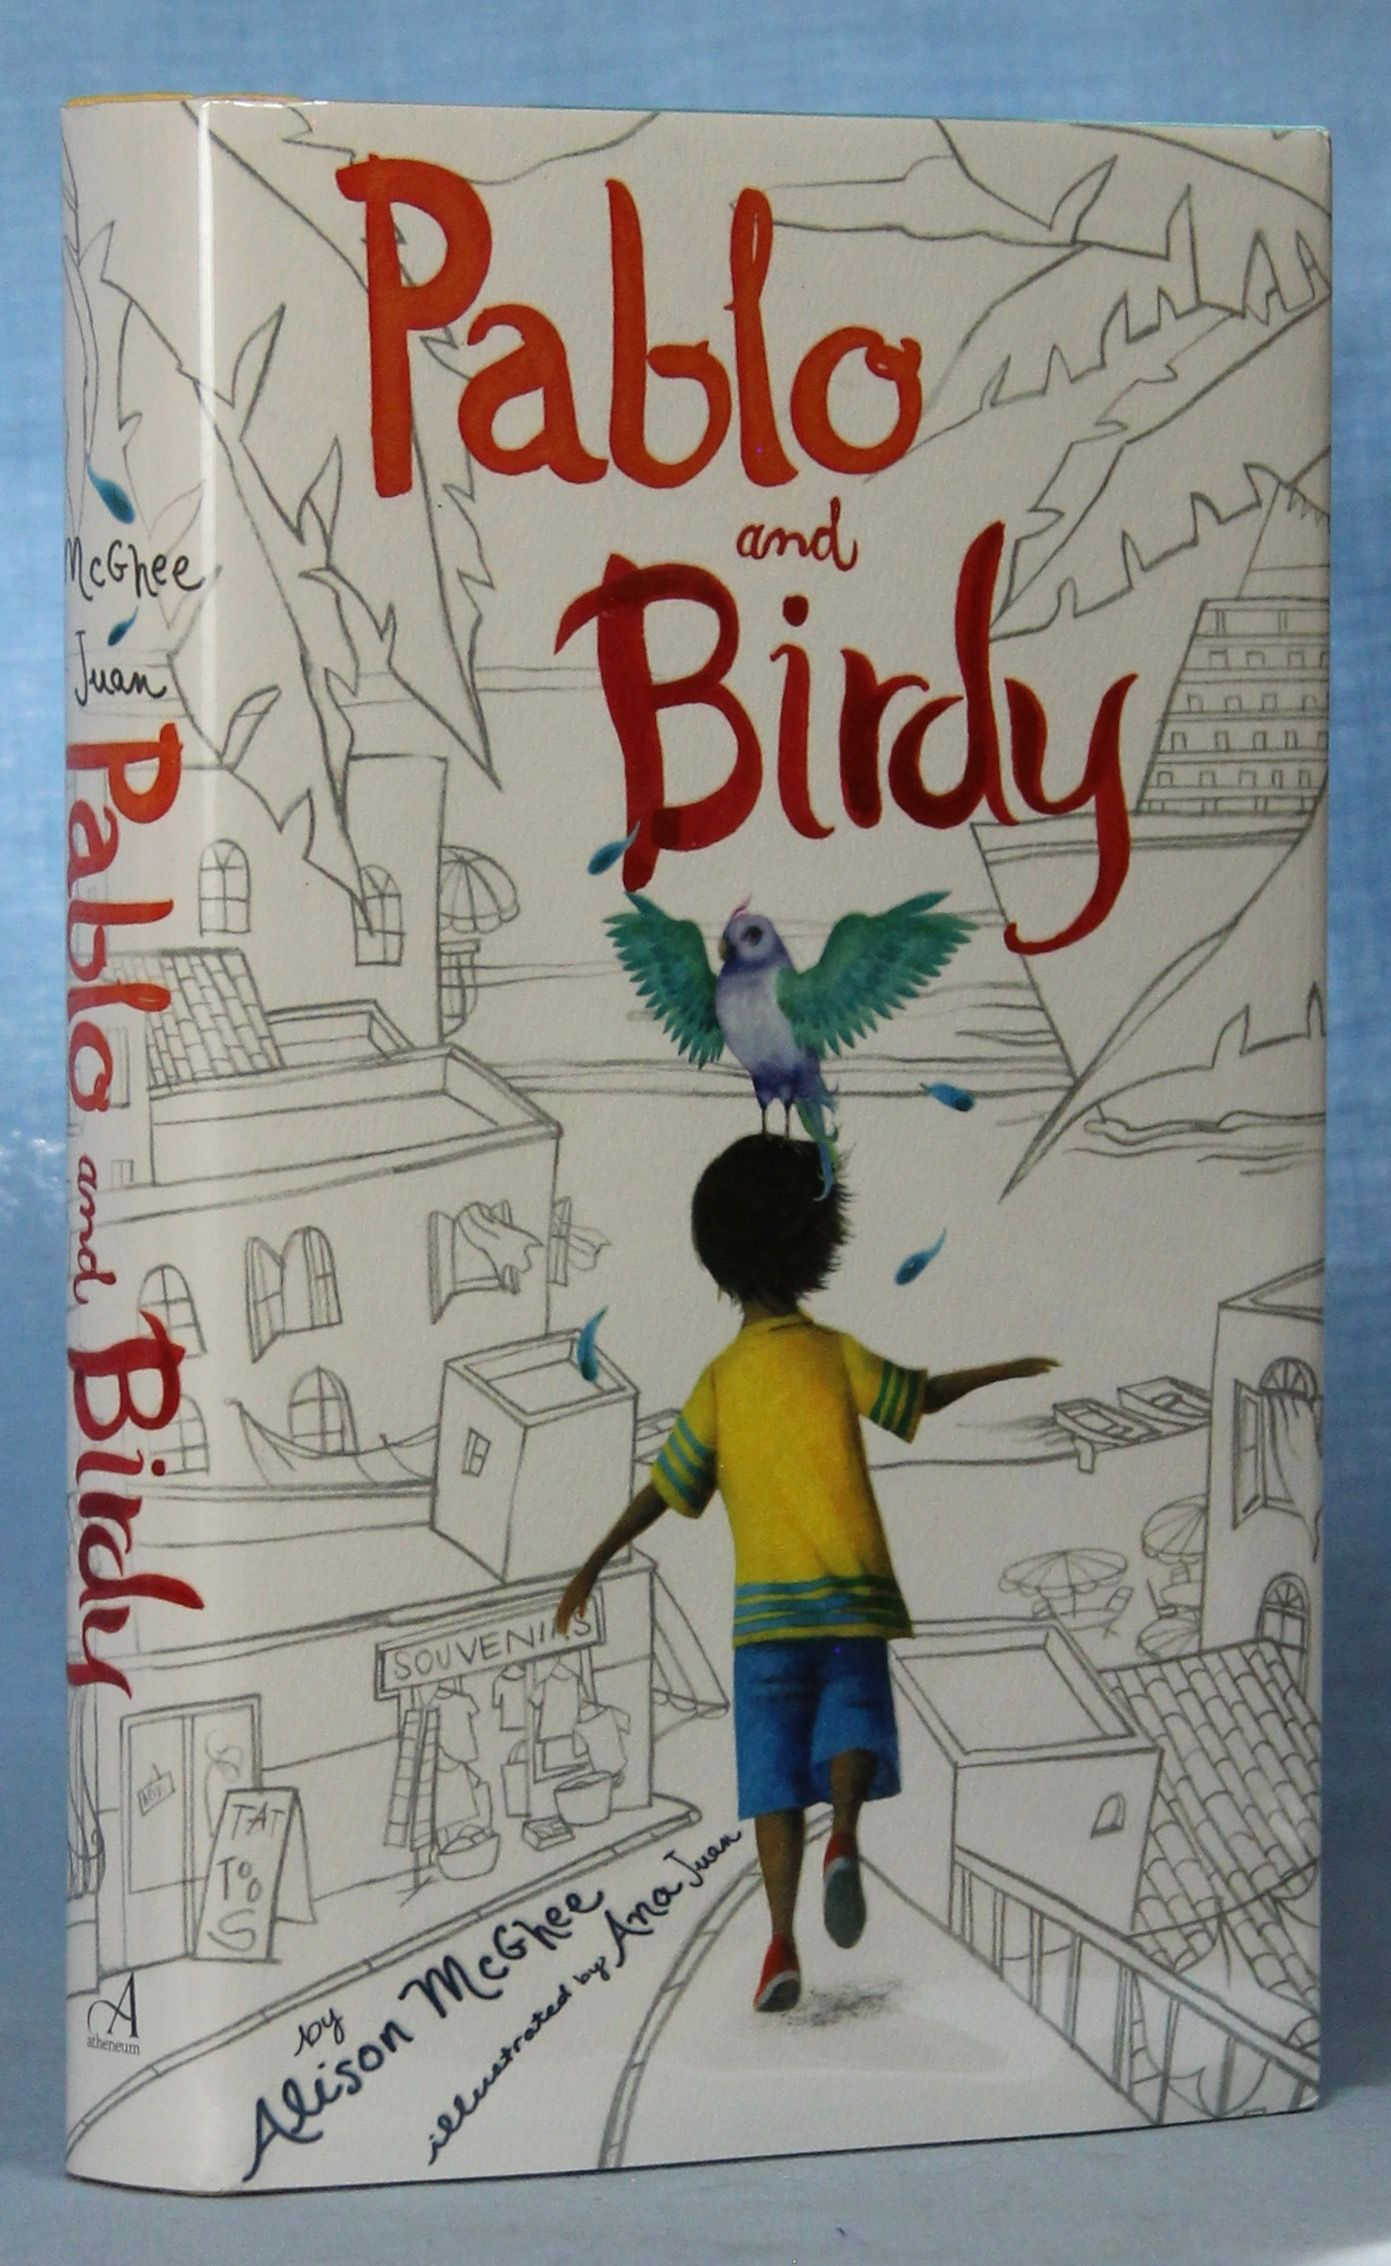 Image for Pablo and Birdy (Signed)